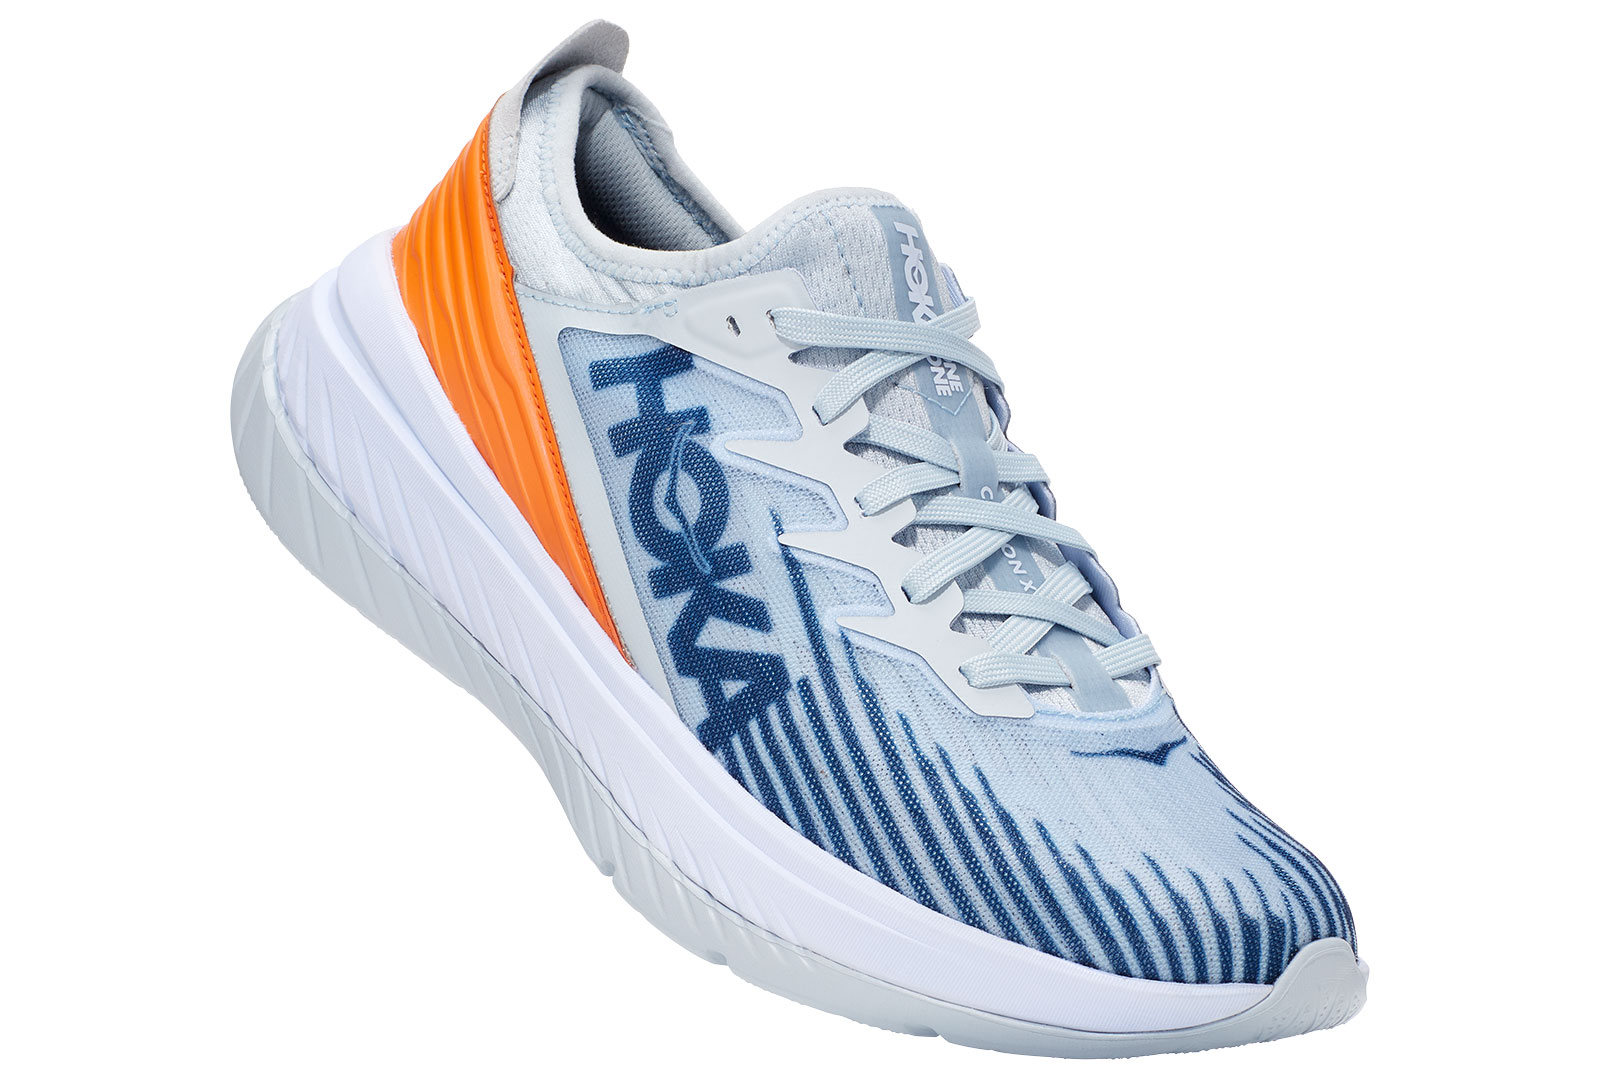 Hoka One One Carbon X SPE running shoe